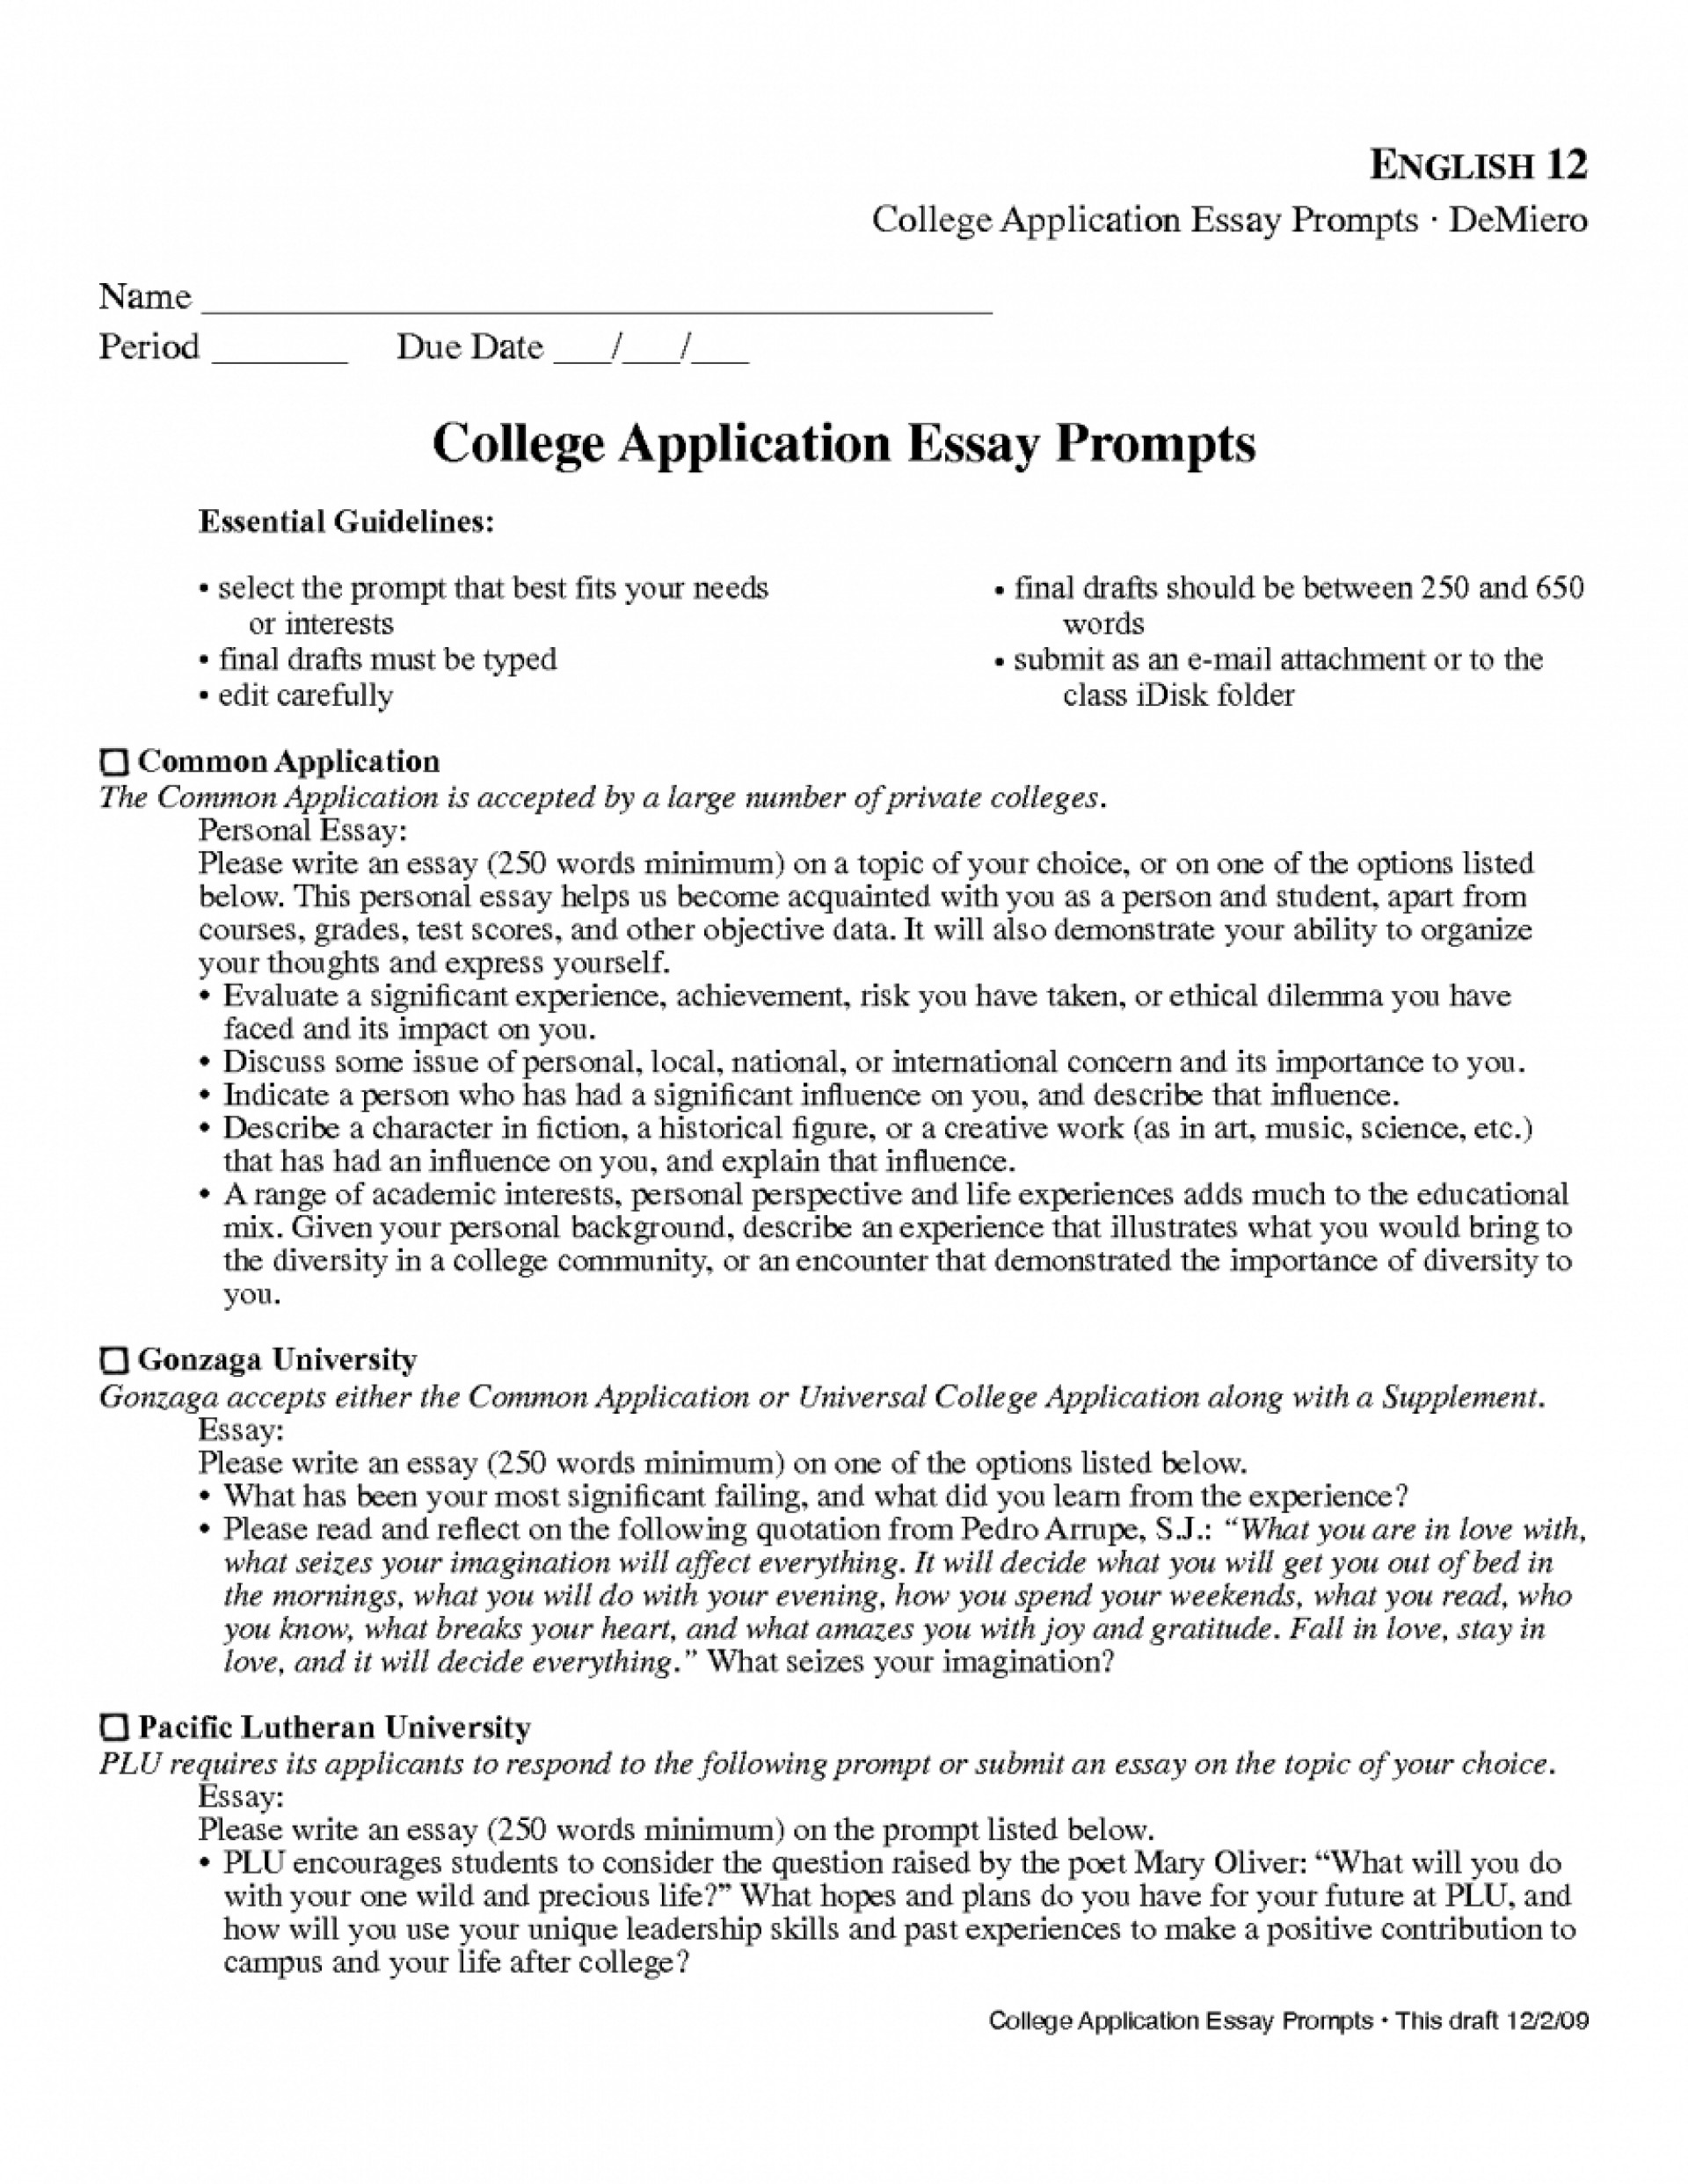 007 Essay Example College Prompts Writings And Essays Unique Application Questions Examples Of Guve Securid Co With Rega Typical Weird Stanford Universal Beautiful Exam Extended Response Question Cma 1920